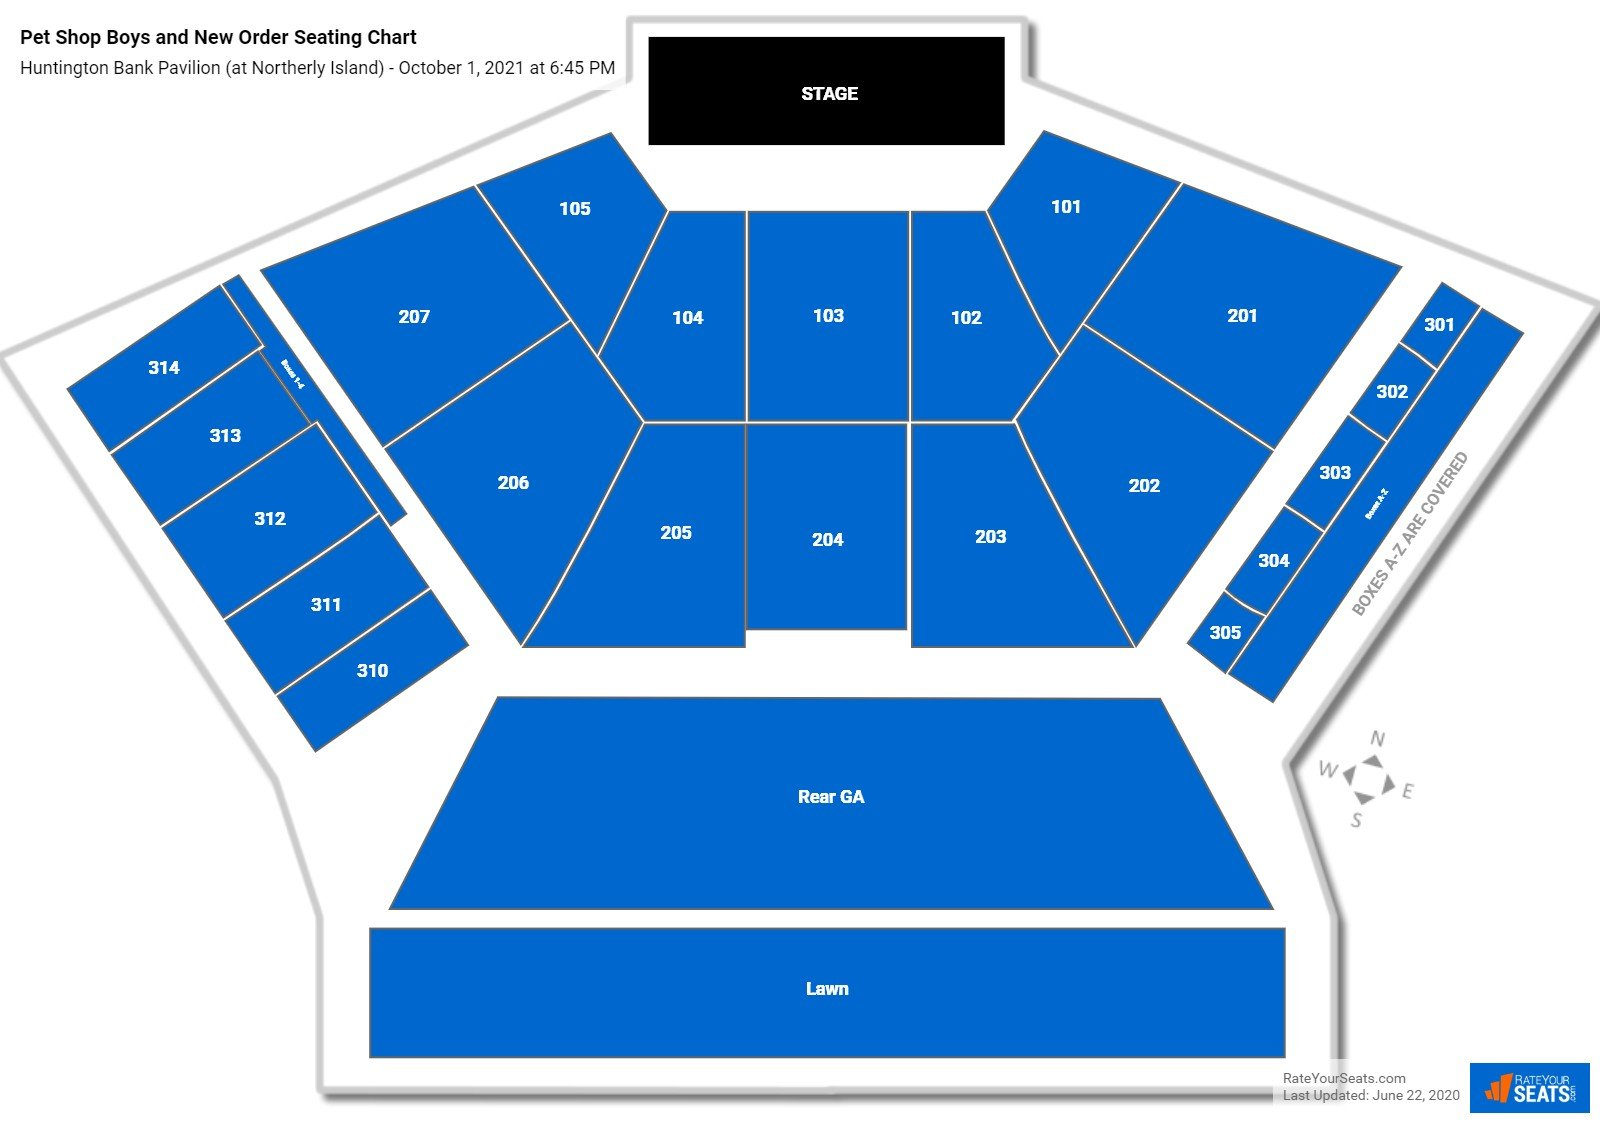 Huntington Bank Pavilion Seating Chart - RateYourSeats.com